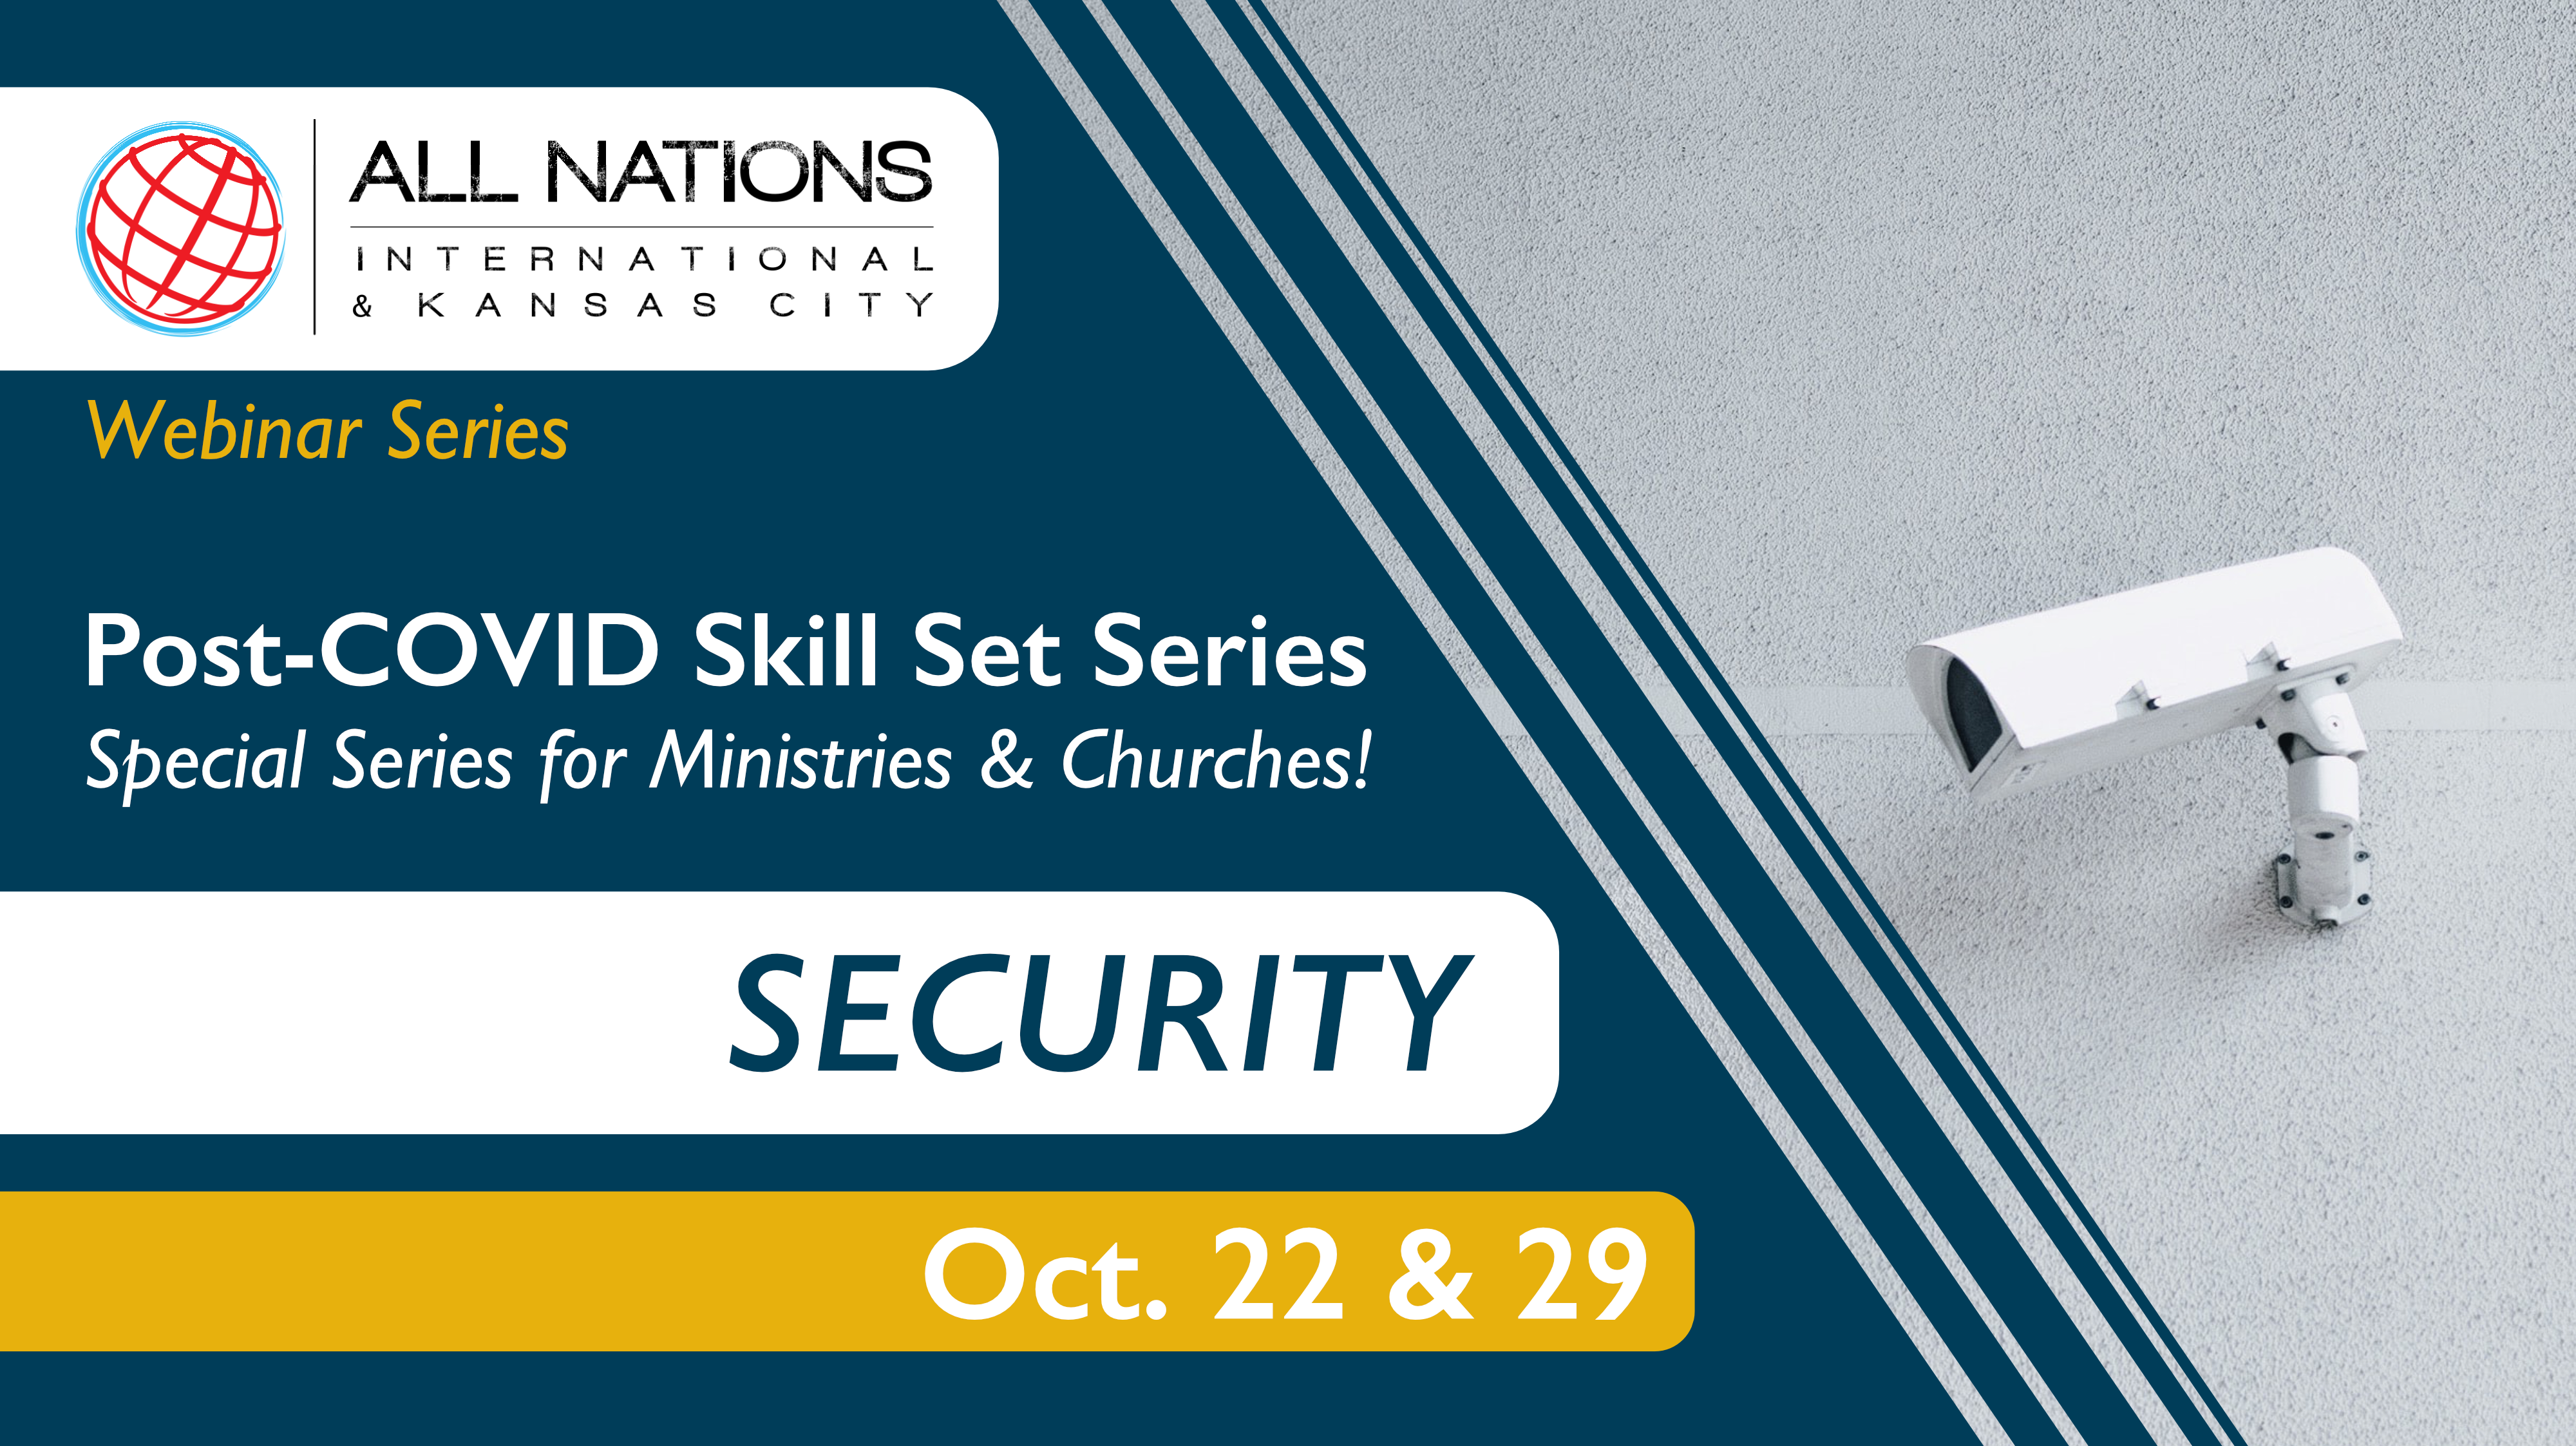 Security: Post-COVID Skills Online Series, Topic 1